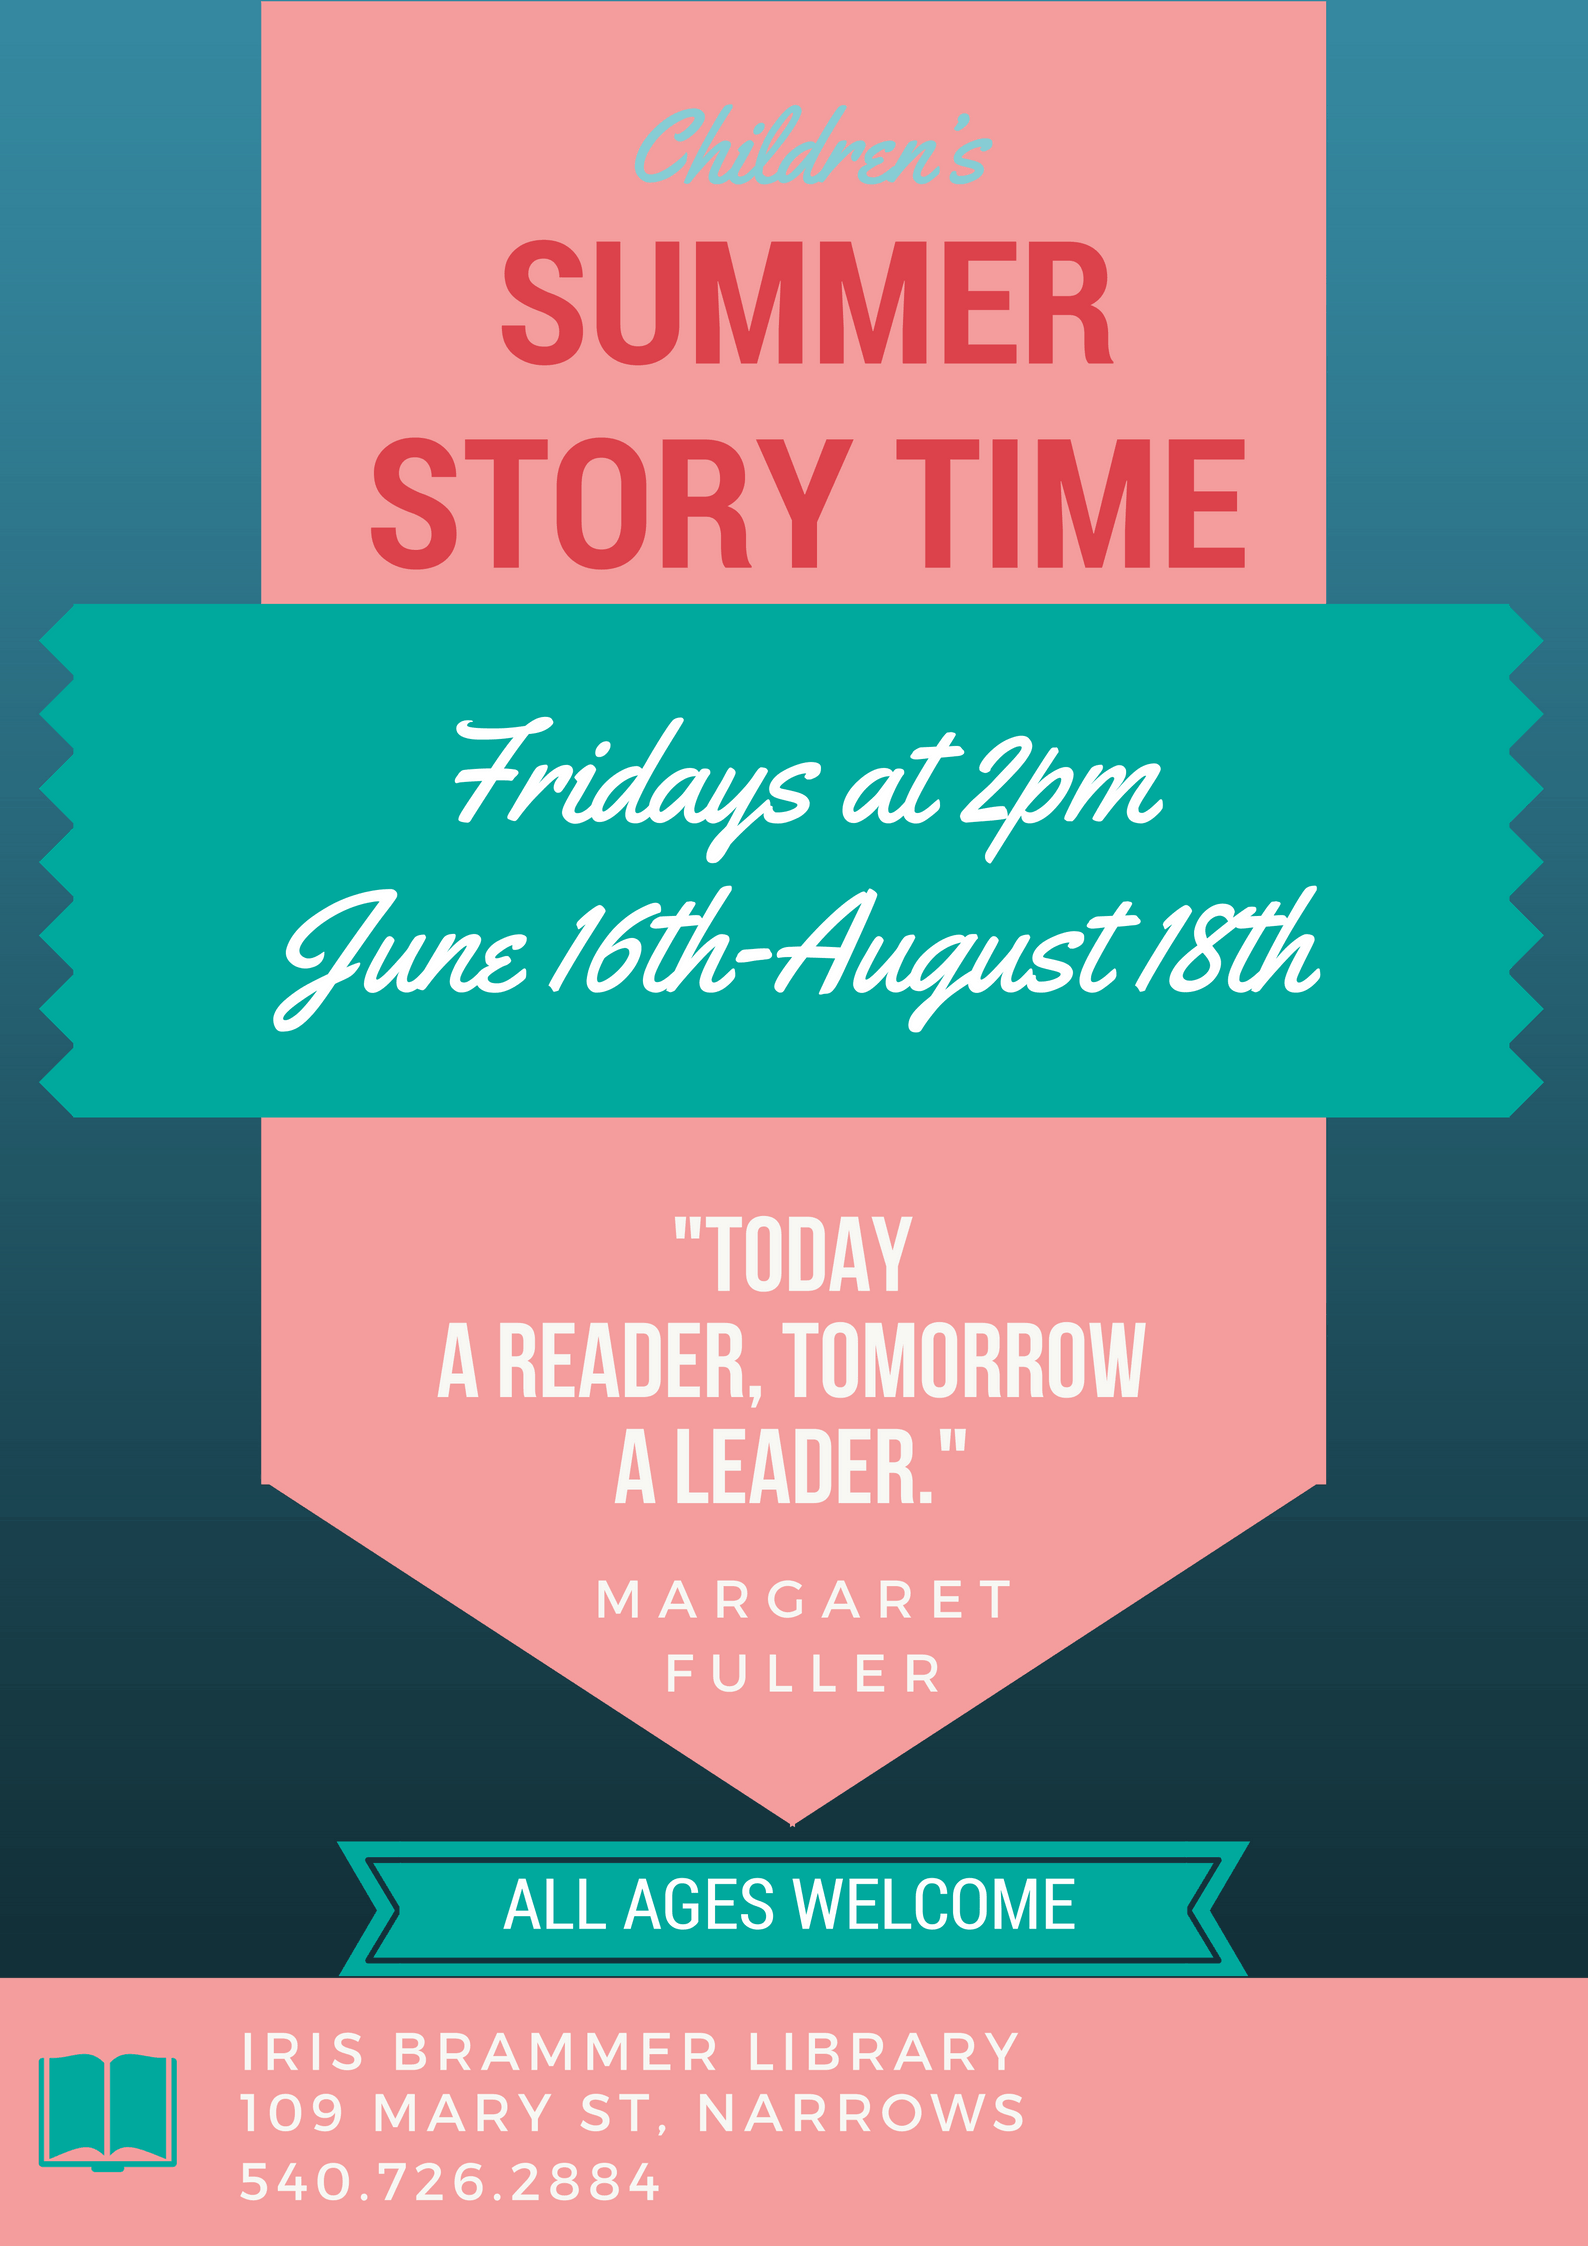 Summer Story Time